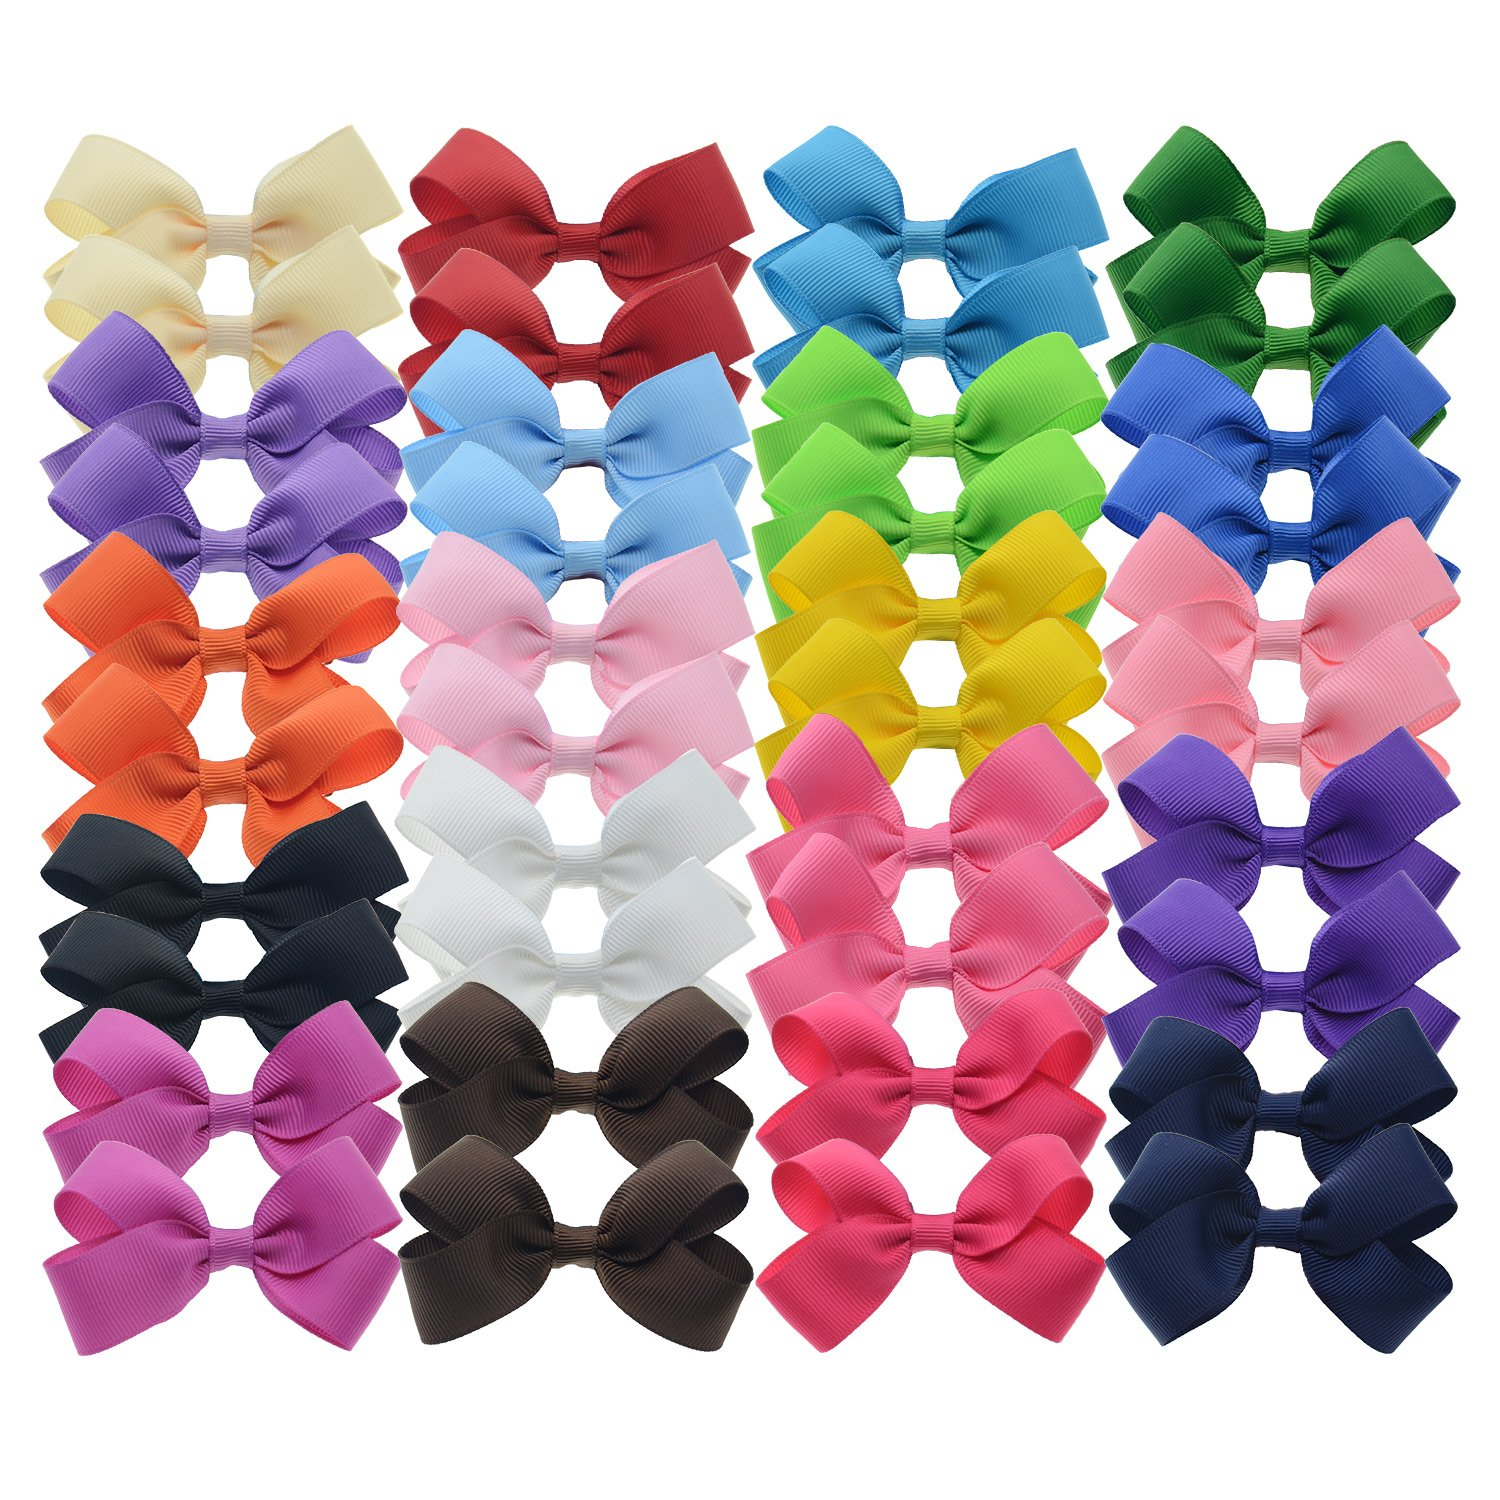 Hair Accessories Girls' Accessories Symbol Of The Brand Handmade 4 Inch Hair Clip Bow Blue Red Green Stripes